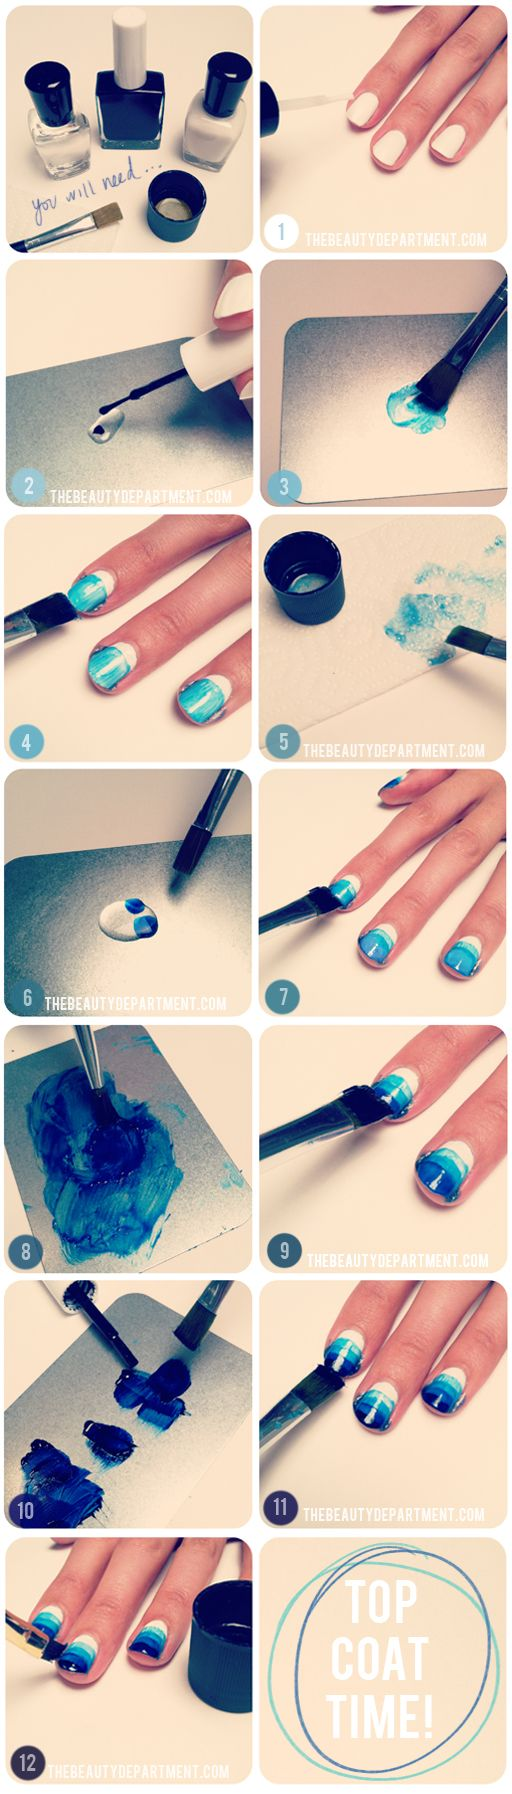 best images about pretty nail designs on pinterest nail